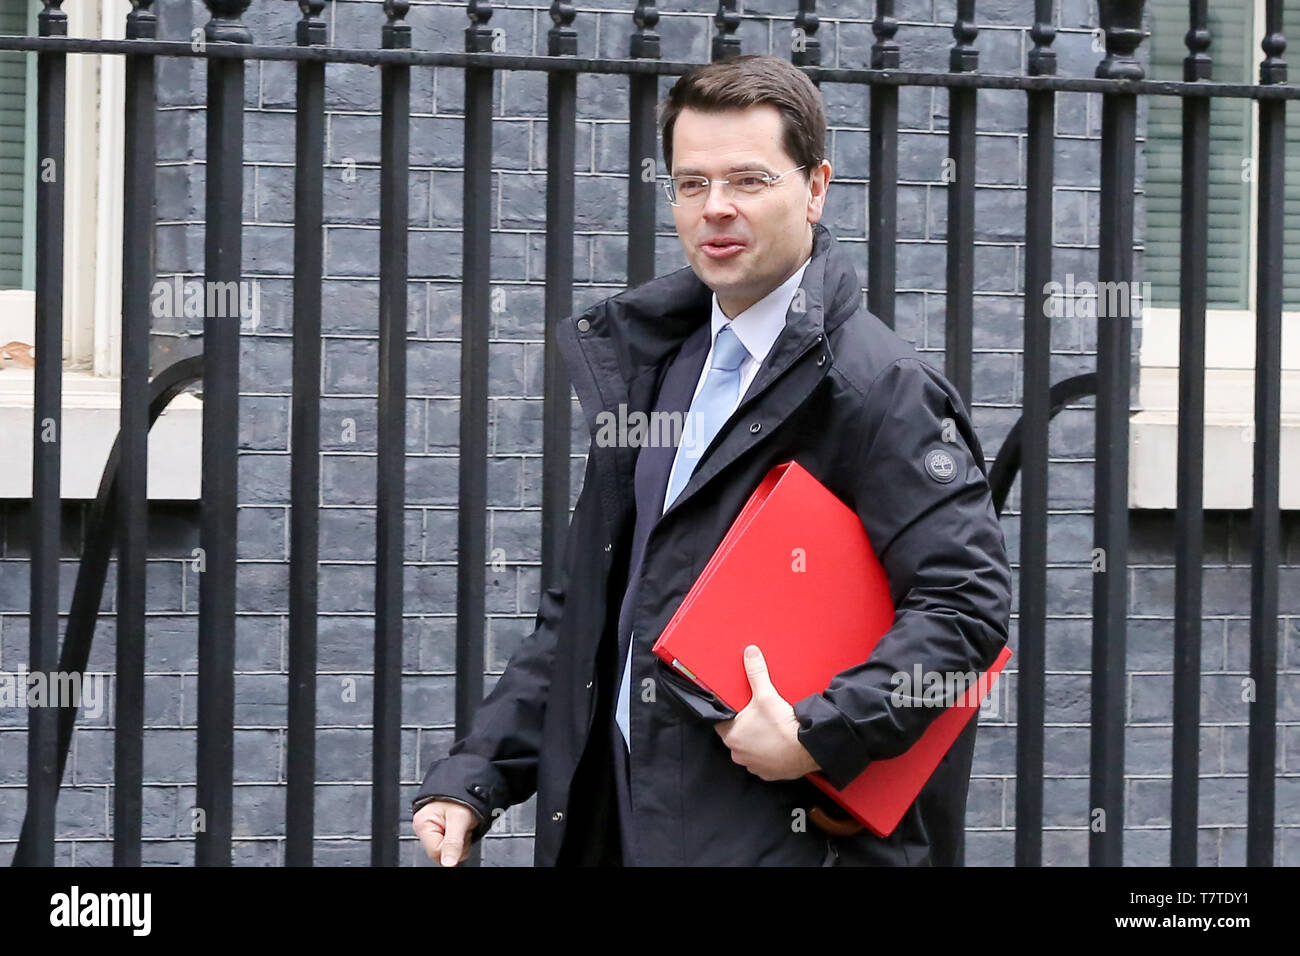 March 19, 2019 - London, UK, United Kingdom - Communities Secretary James Brokenshire seen in Downing Street..On 14 June 2017, a fire broke out in the 24-storey Grenfell Tower block of flats in North Kensington, West London where 72 people died, more than 70 others were injured and 223 people escaped..The UK Government is to fund an estimated £200 million to replacement of unsafe Grenfell style cladding on around 170 high-rise private residential buildings after private building owners failed to take action. Communities Secretary James Brokenshire said inaction from building owners had compel - Stock Image